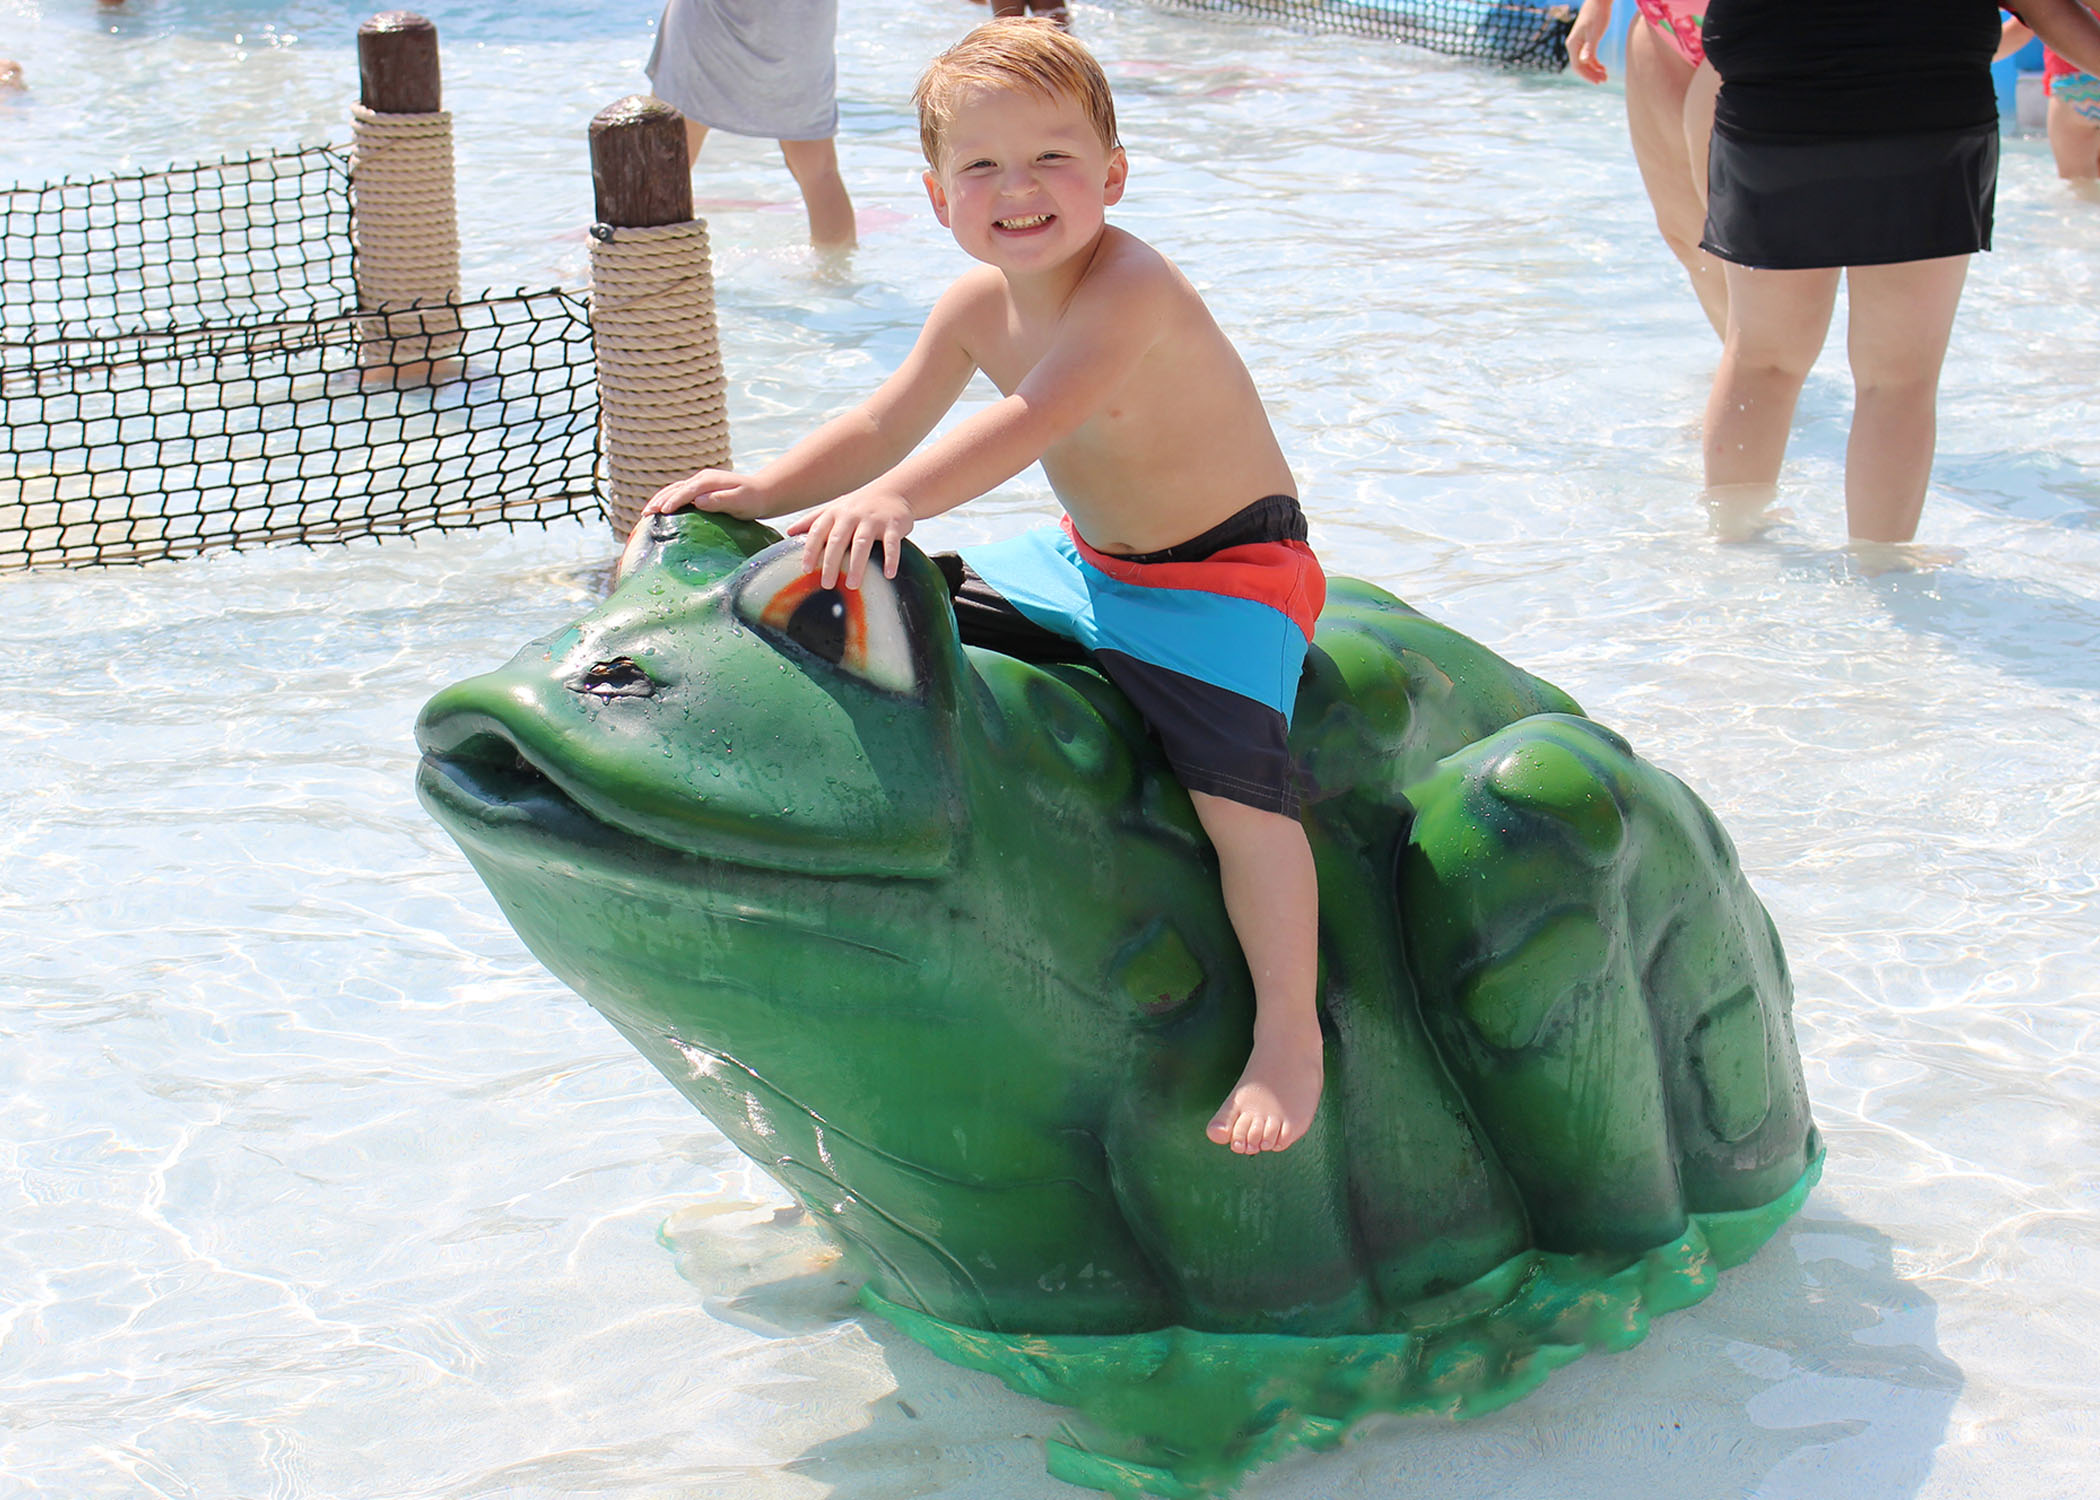 Little boy sitting and smiling on large green frog in our Happy Harbor.